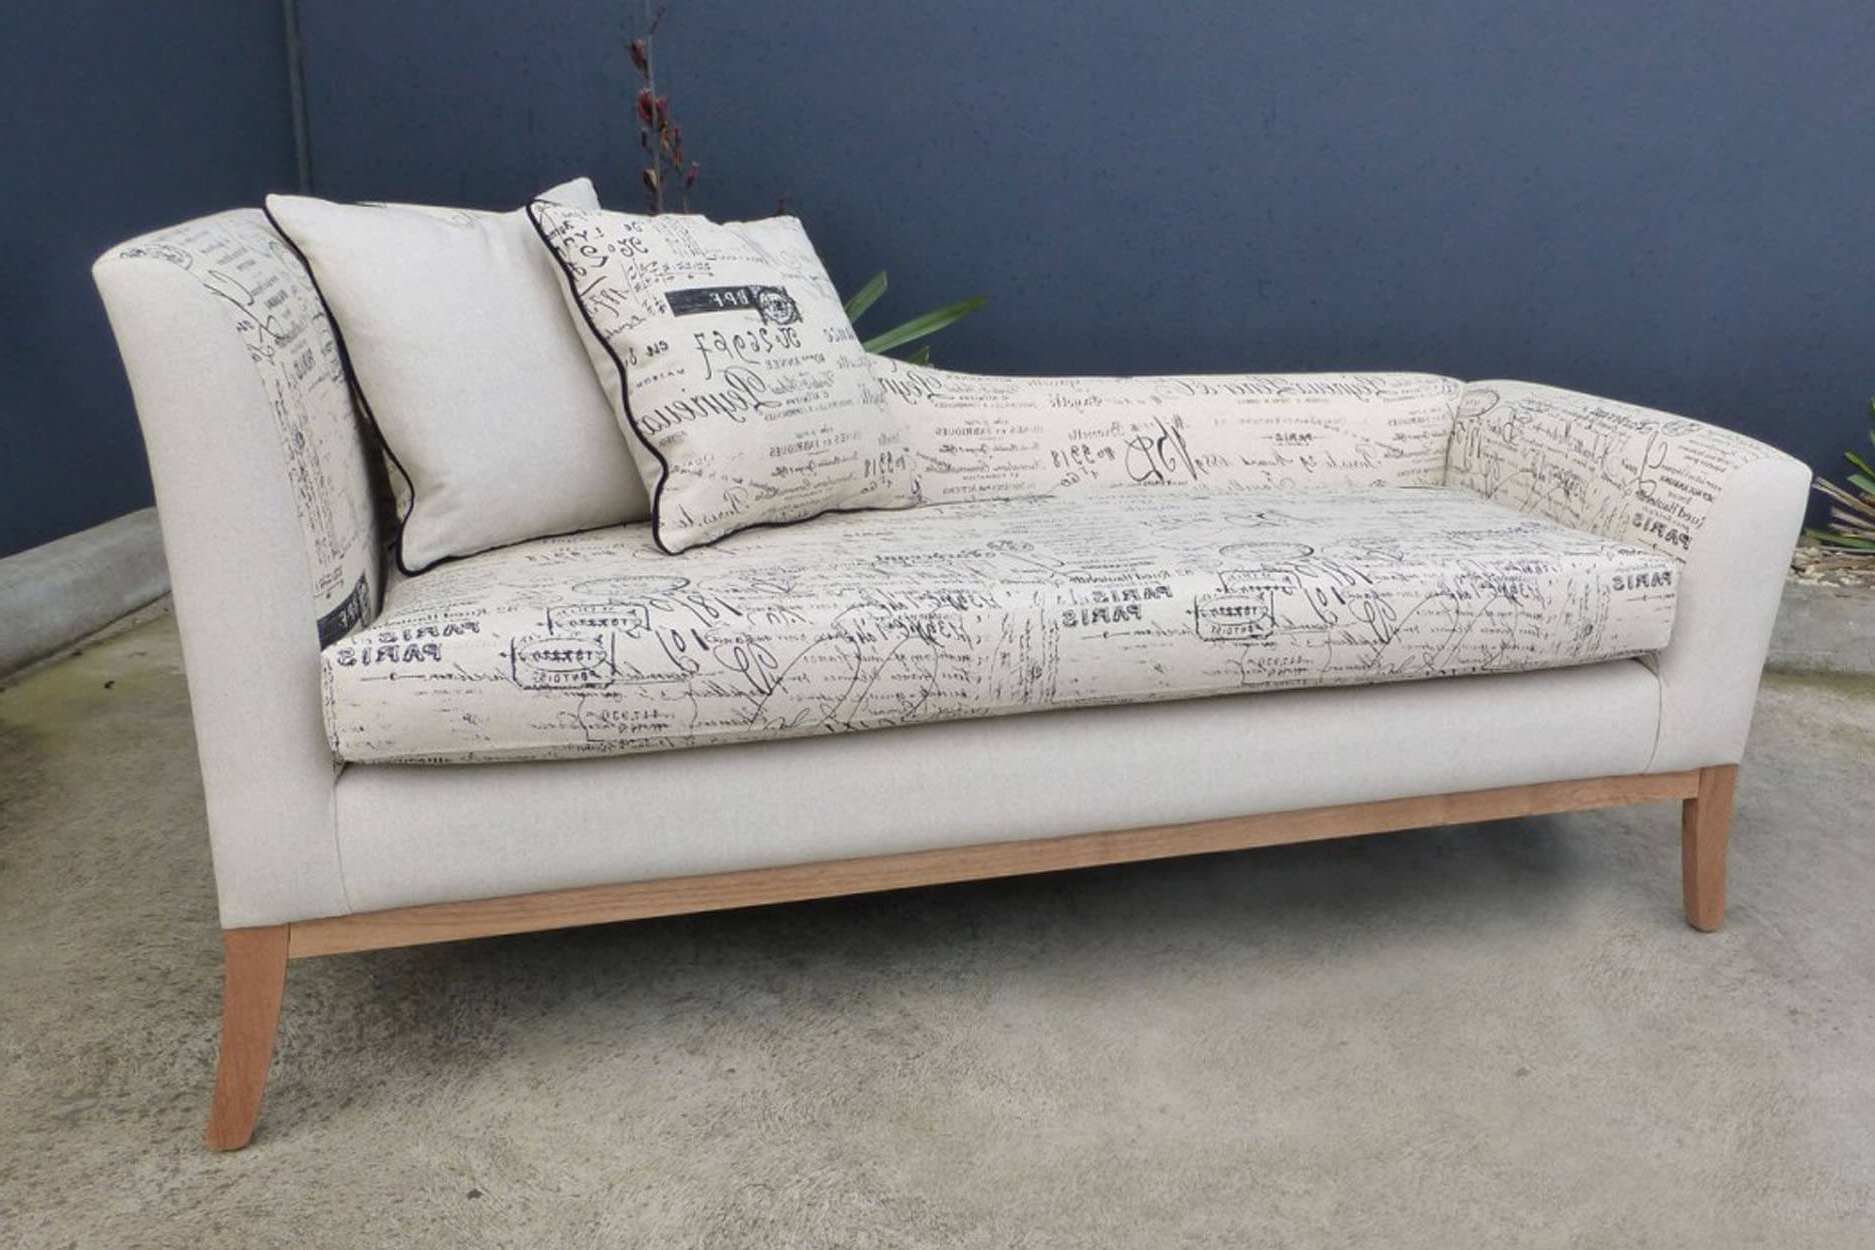 Well Known Modern Chaise Lounge With Script Fabric – Timeless Interior Designer In Fabric Chaise Lounges (View 15 of 15)